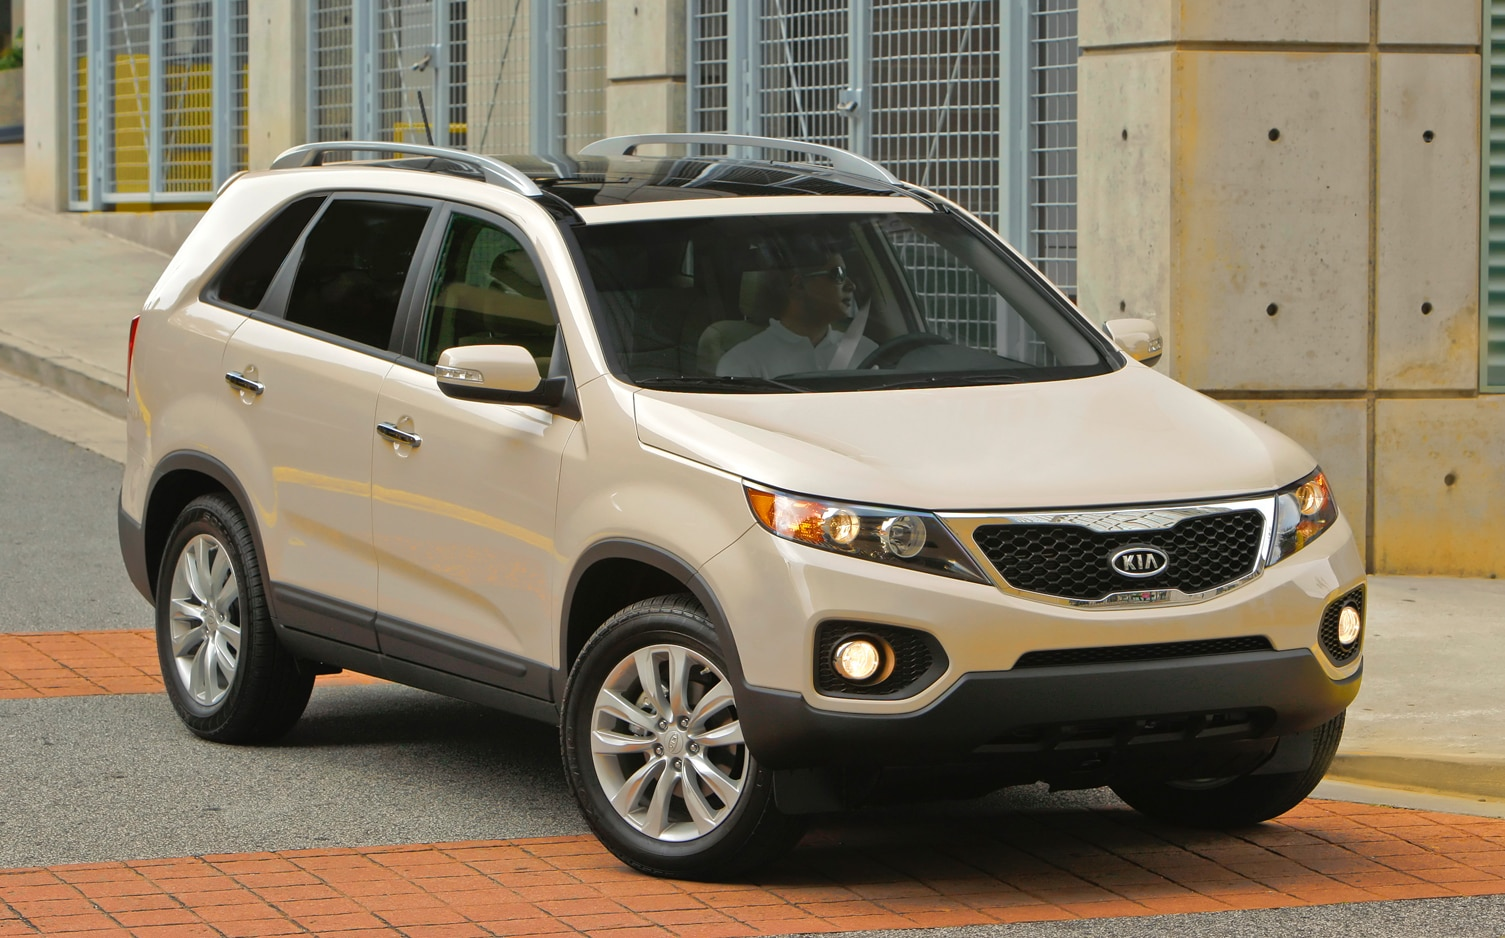 2012 Kia Sorento Front Right Side View 4